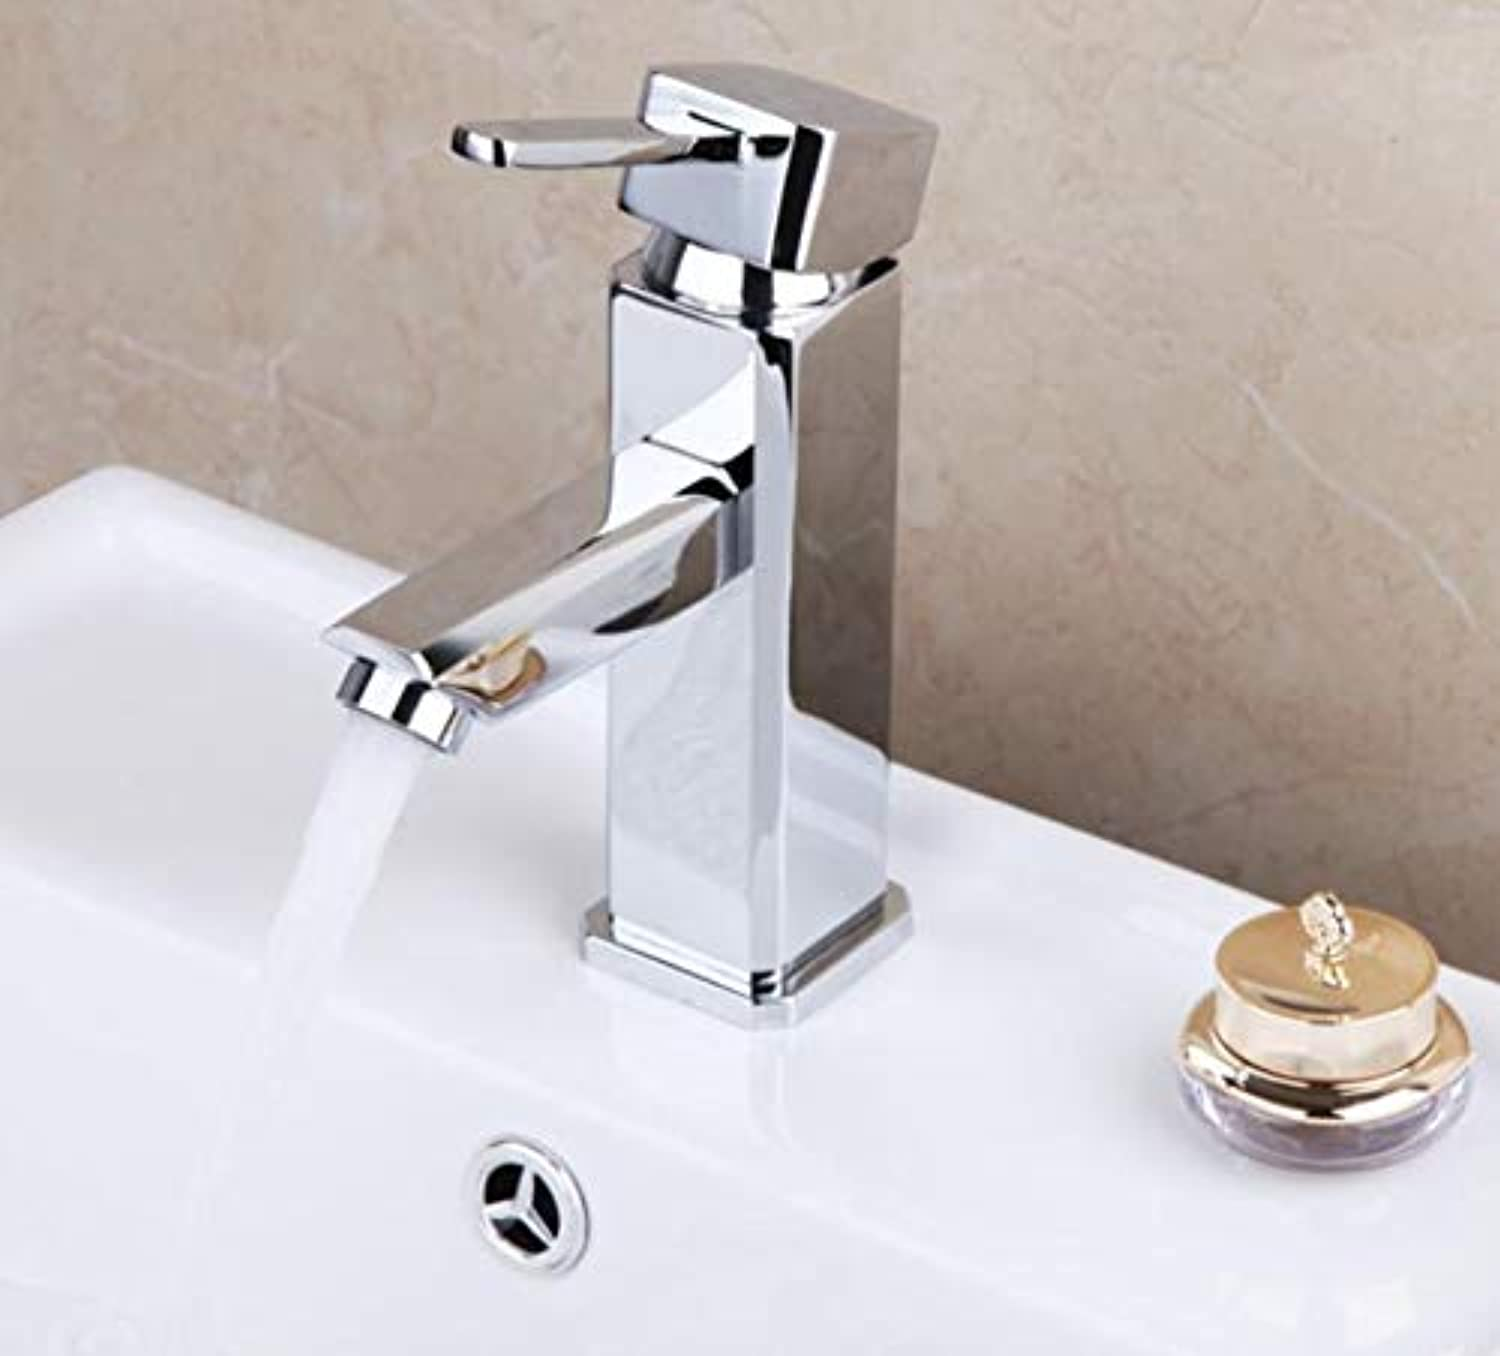 Bathroom Faucet Bathroom Faucet Deck Mounted Chrome Brass Counter Top Basin Sink Mixer Bathroom Wash Basin Faucet Water Mixer